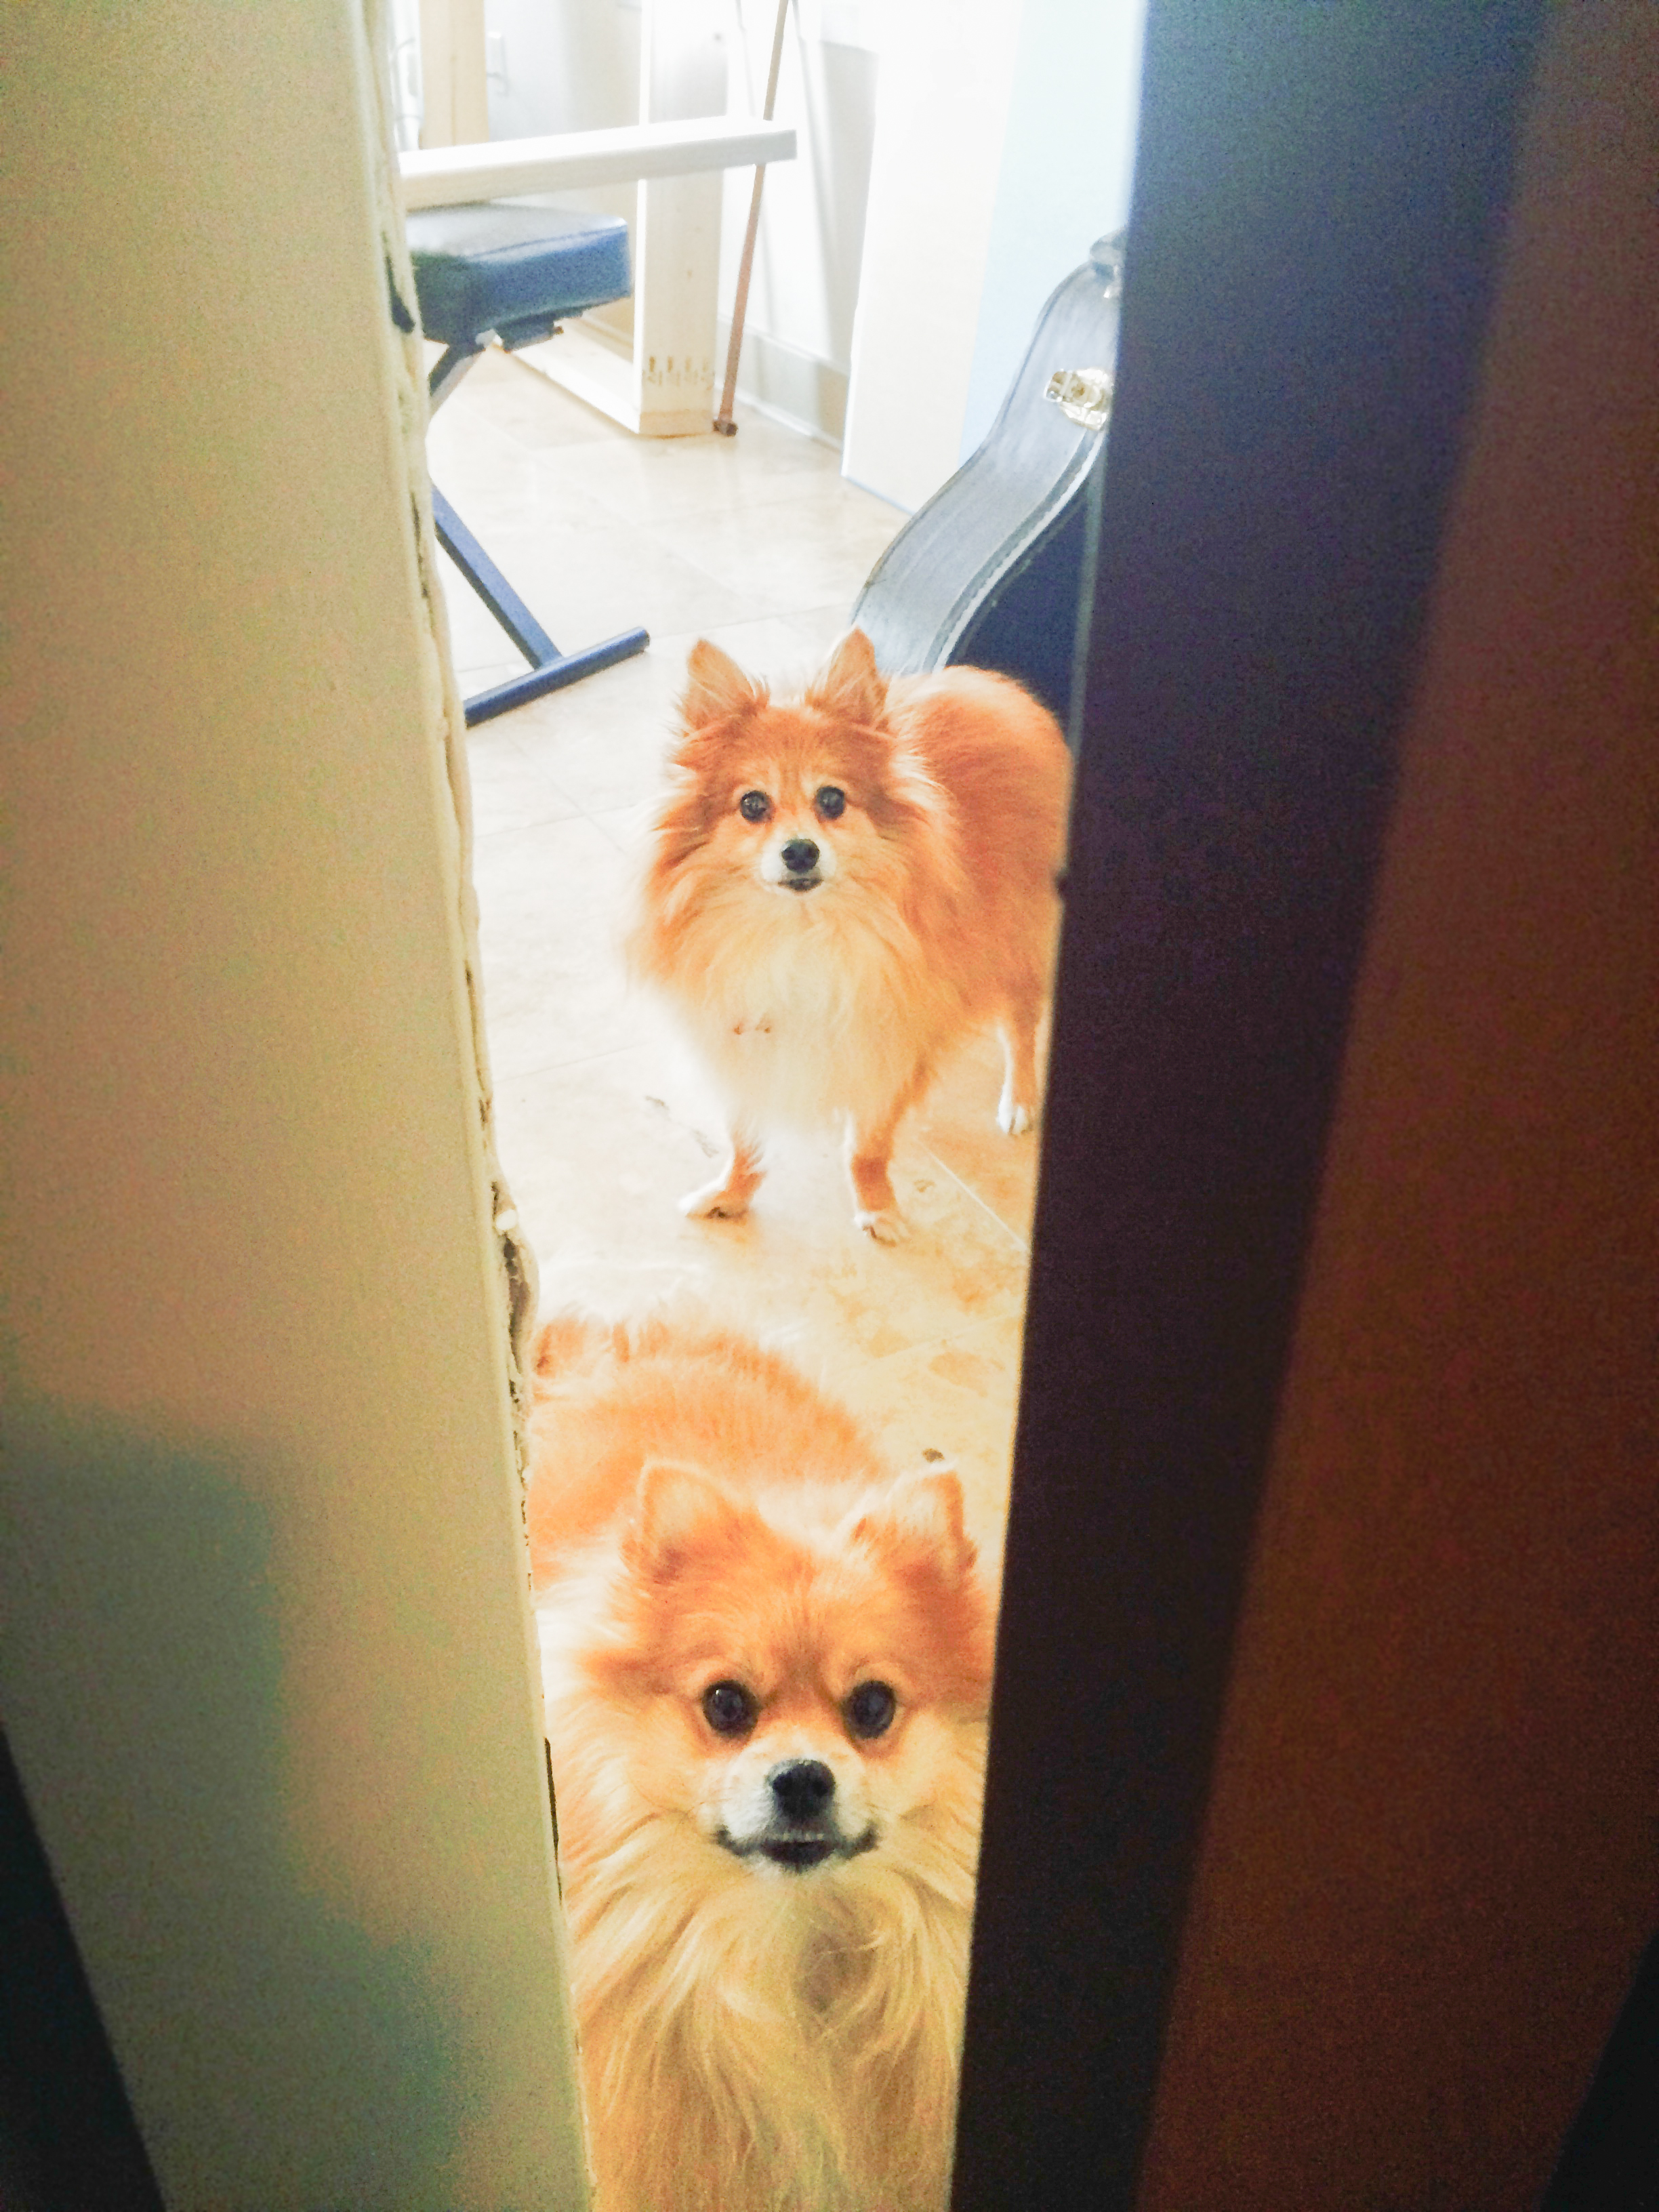 Two of the three pomeranian cuties that waited eagerly for us to come out of the studio every day (Teddy is the adorable 25lbs fur ball with an overbite and Halo is the sweet and crazy little fox in the back...love them!)